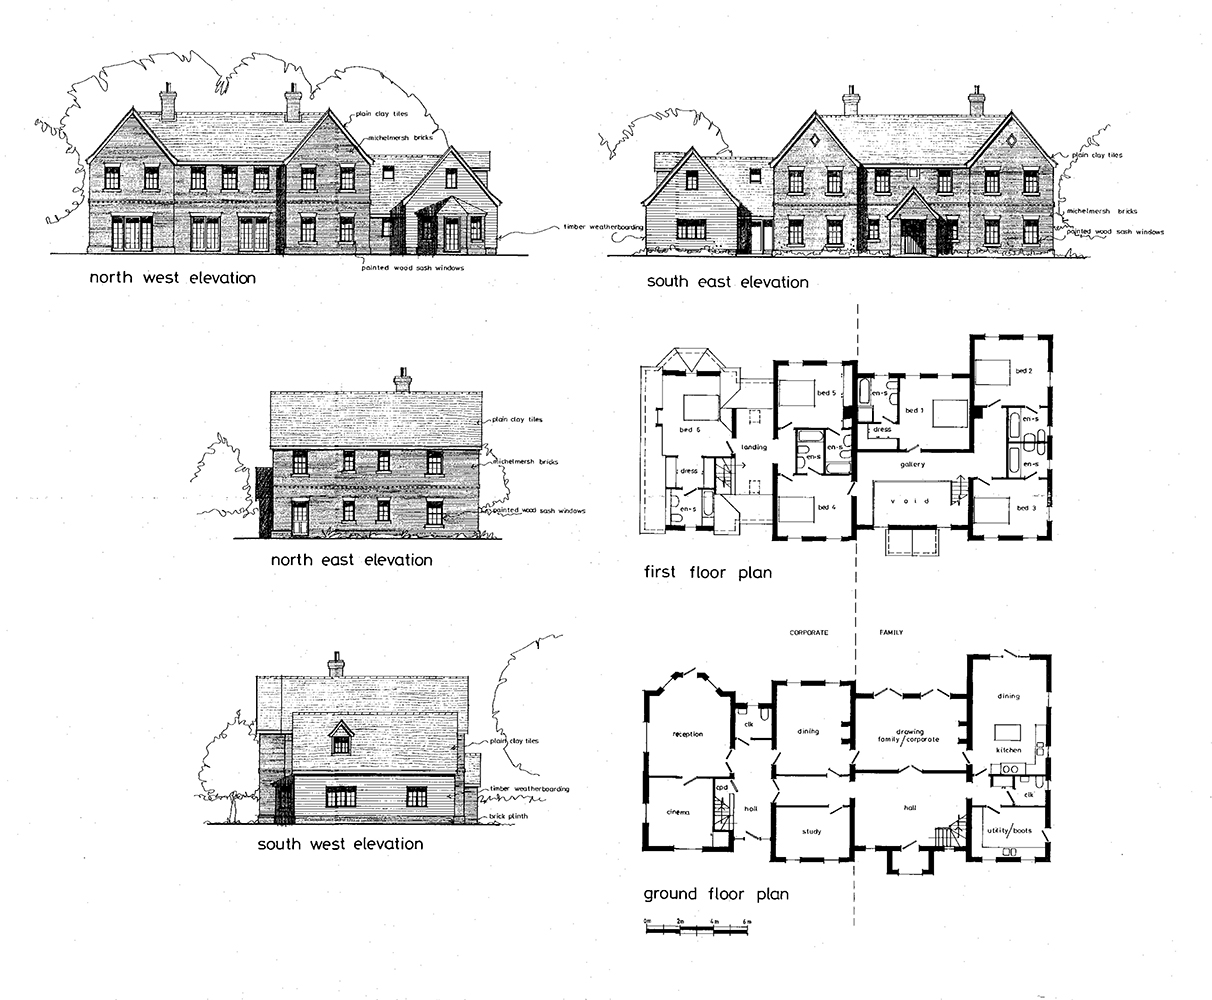 Trickledown-Design-Scheme-071110-01B-approved-drawing.jpg